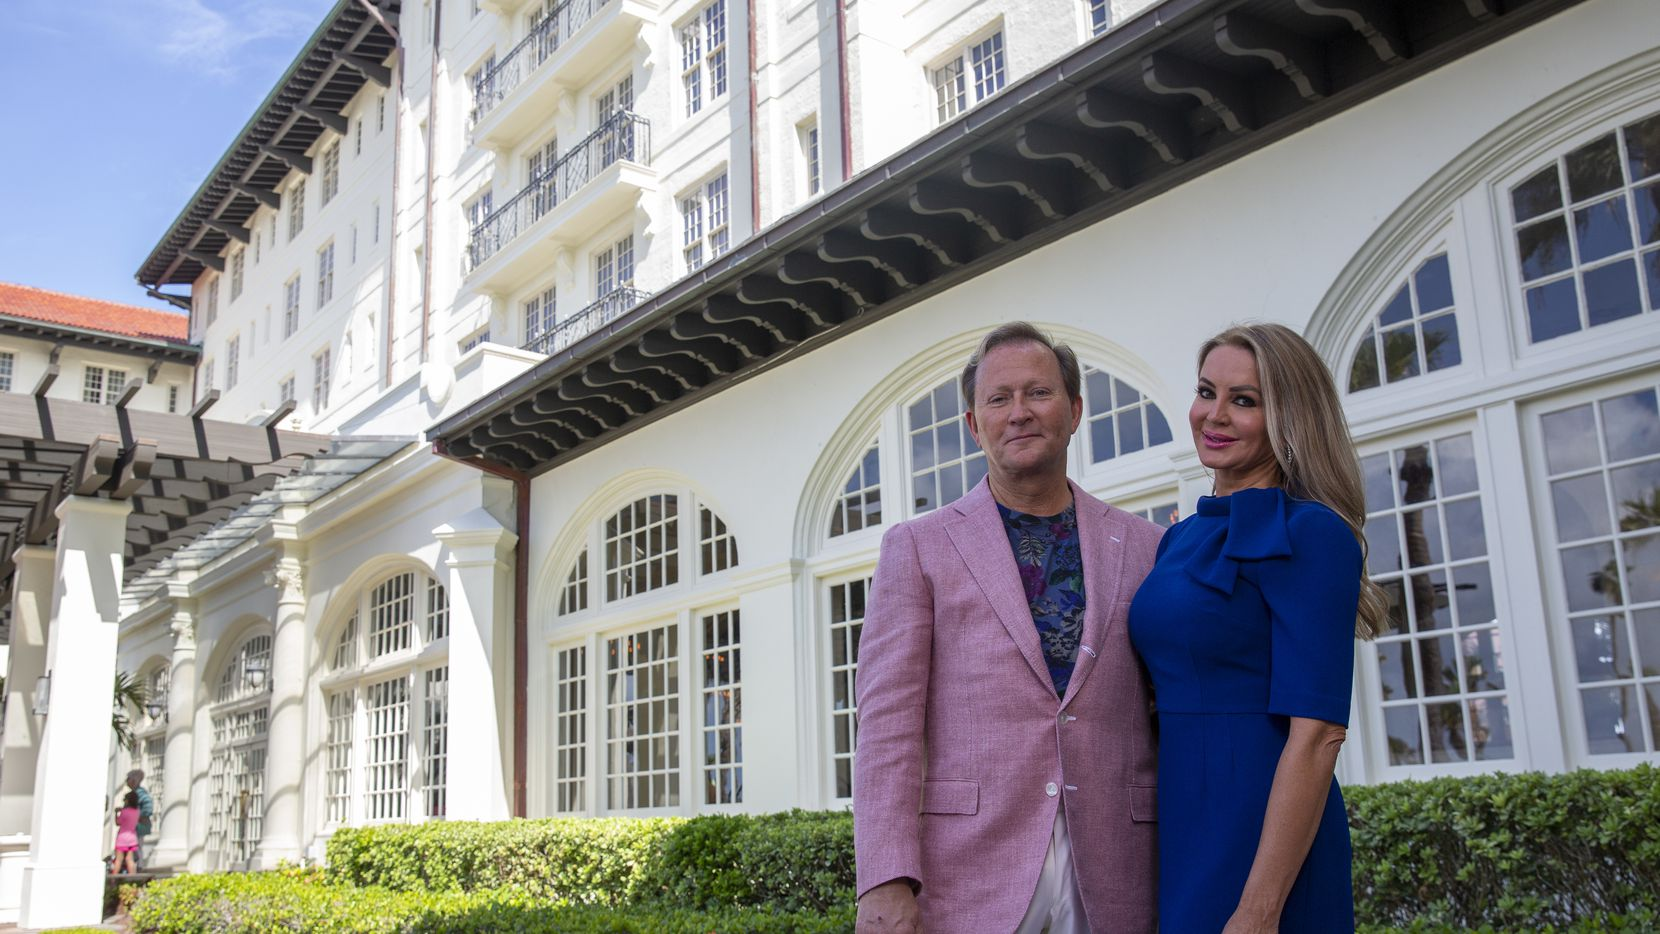 Mark and Lorenda Wyant on the terrace of the Grand Galvez Hotel in Galveston. The owner and CEO of Dallas-based Seawall Hospitality LLC bought the Hotel Galvez & Spa in May for more than $50 million.